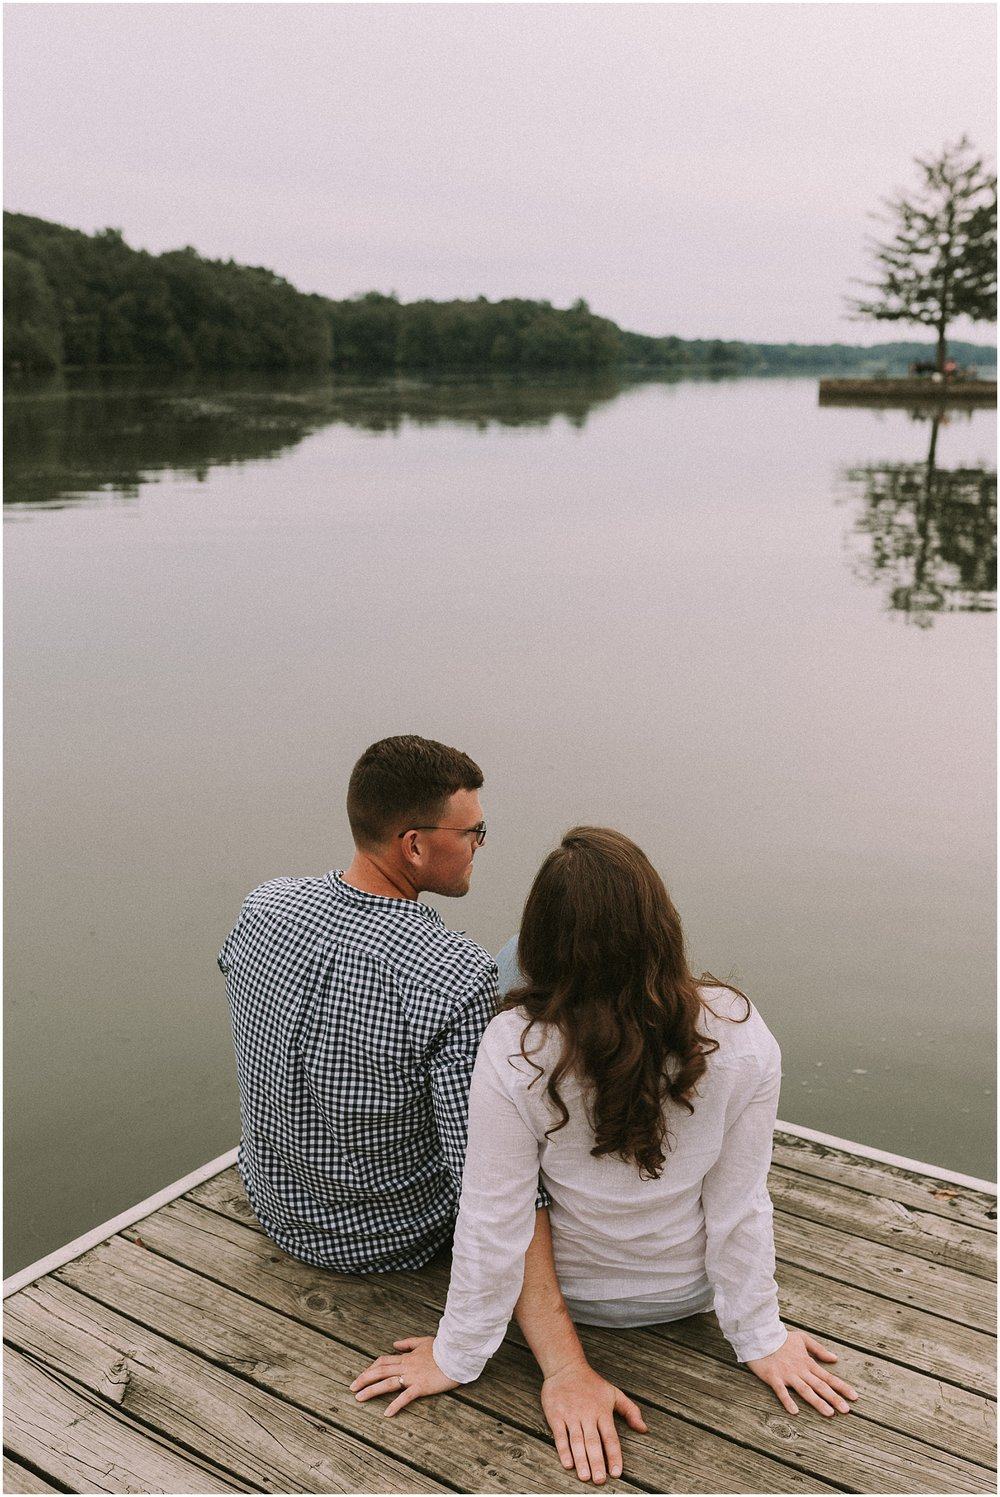 gifford pinchot state park-engagement-anniversary-photo session-outdoor photos-husband-wife-central pennsylvania_0309.jpg